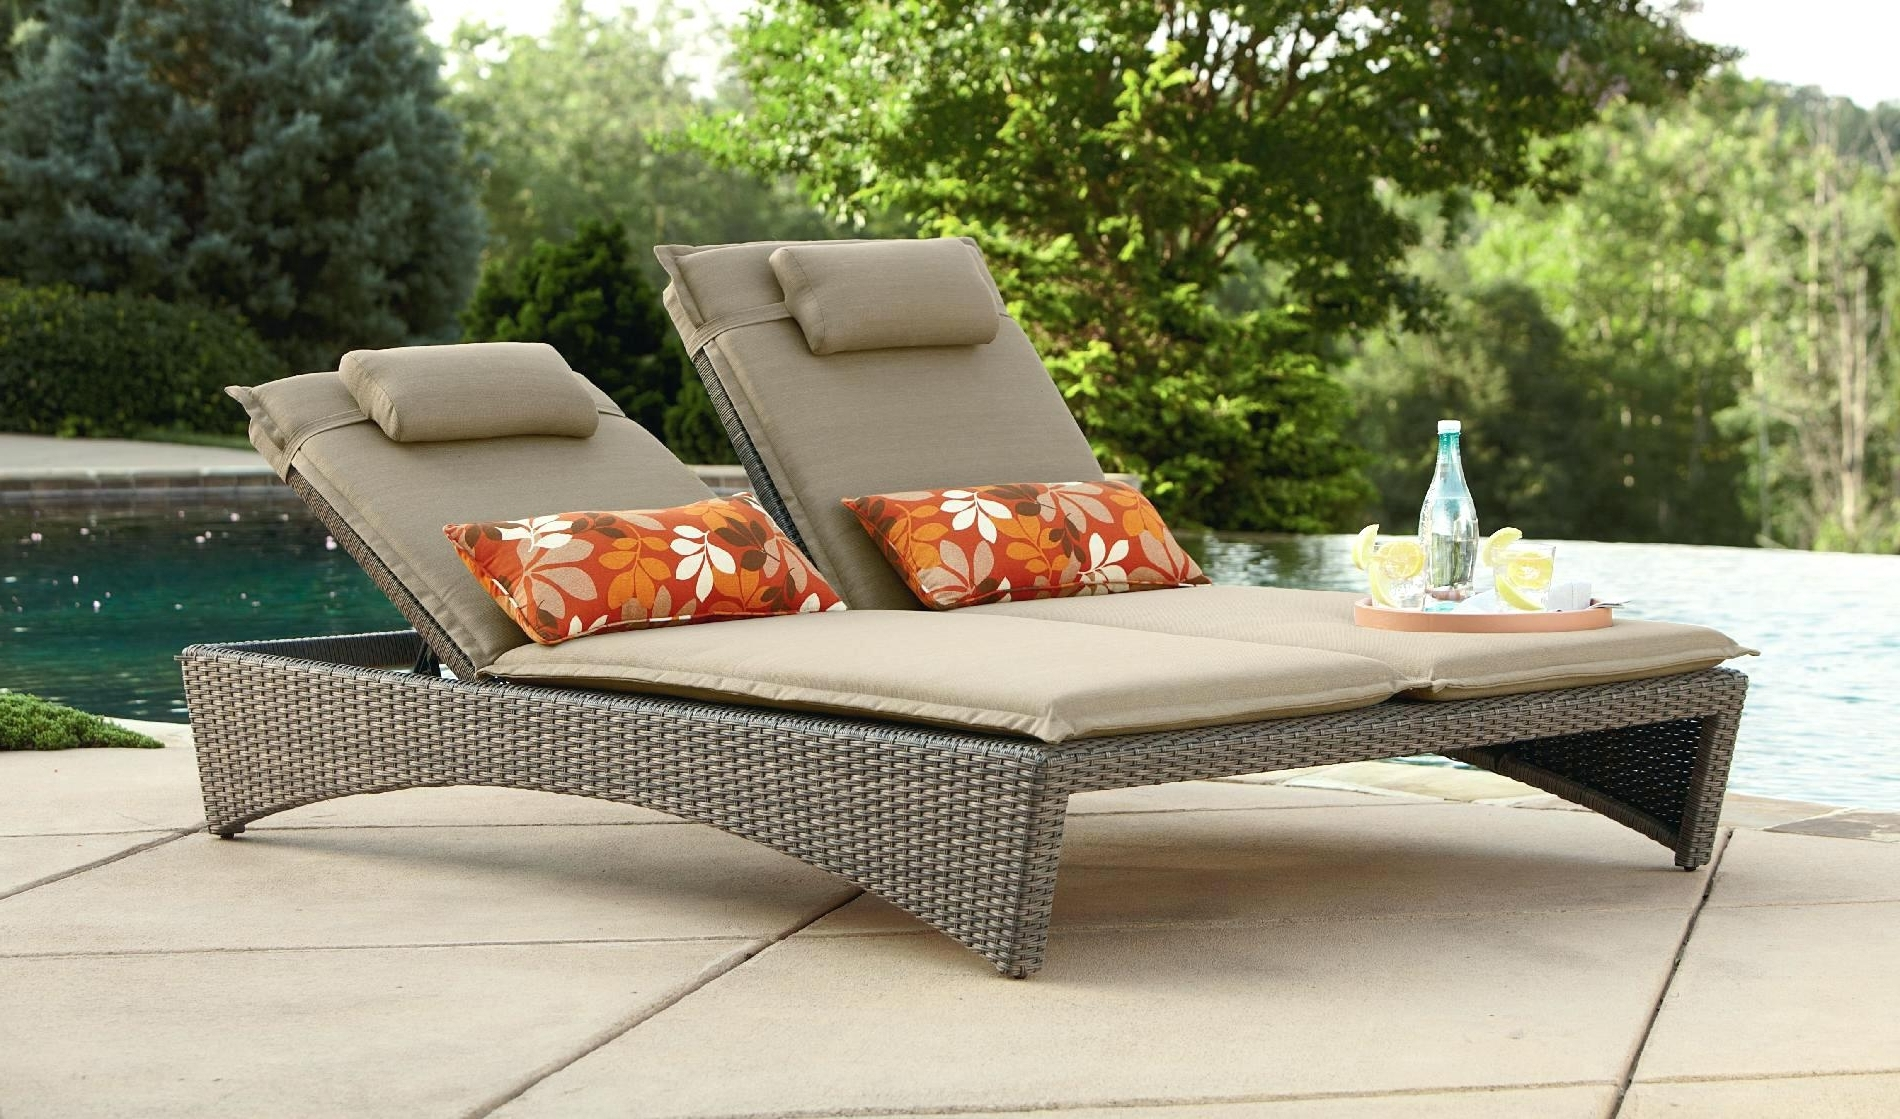 Outdoor Chaise Lounge Chairs Under 100 Awesome Chair For Two Intended For Latest Chaise Lounge Chairs Under $ (View 13 of 15)